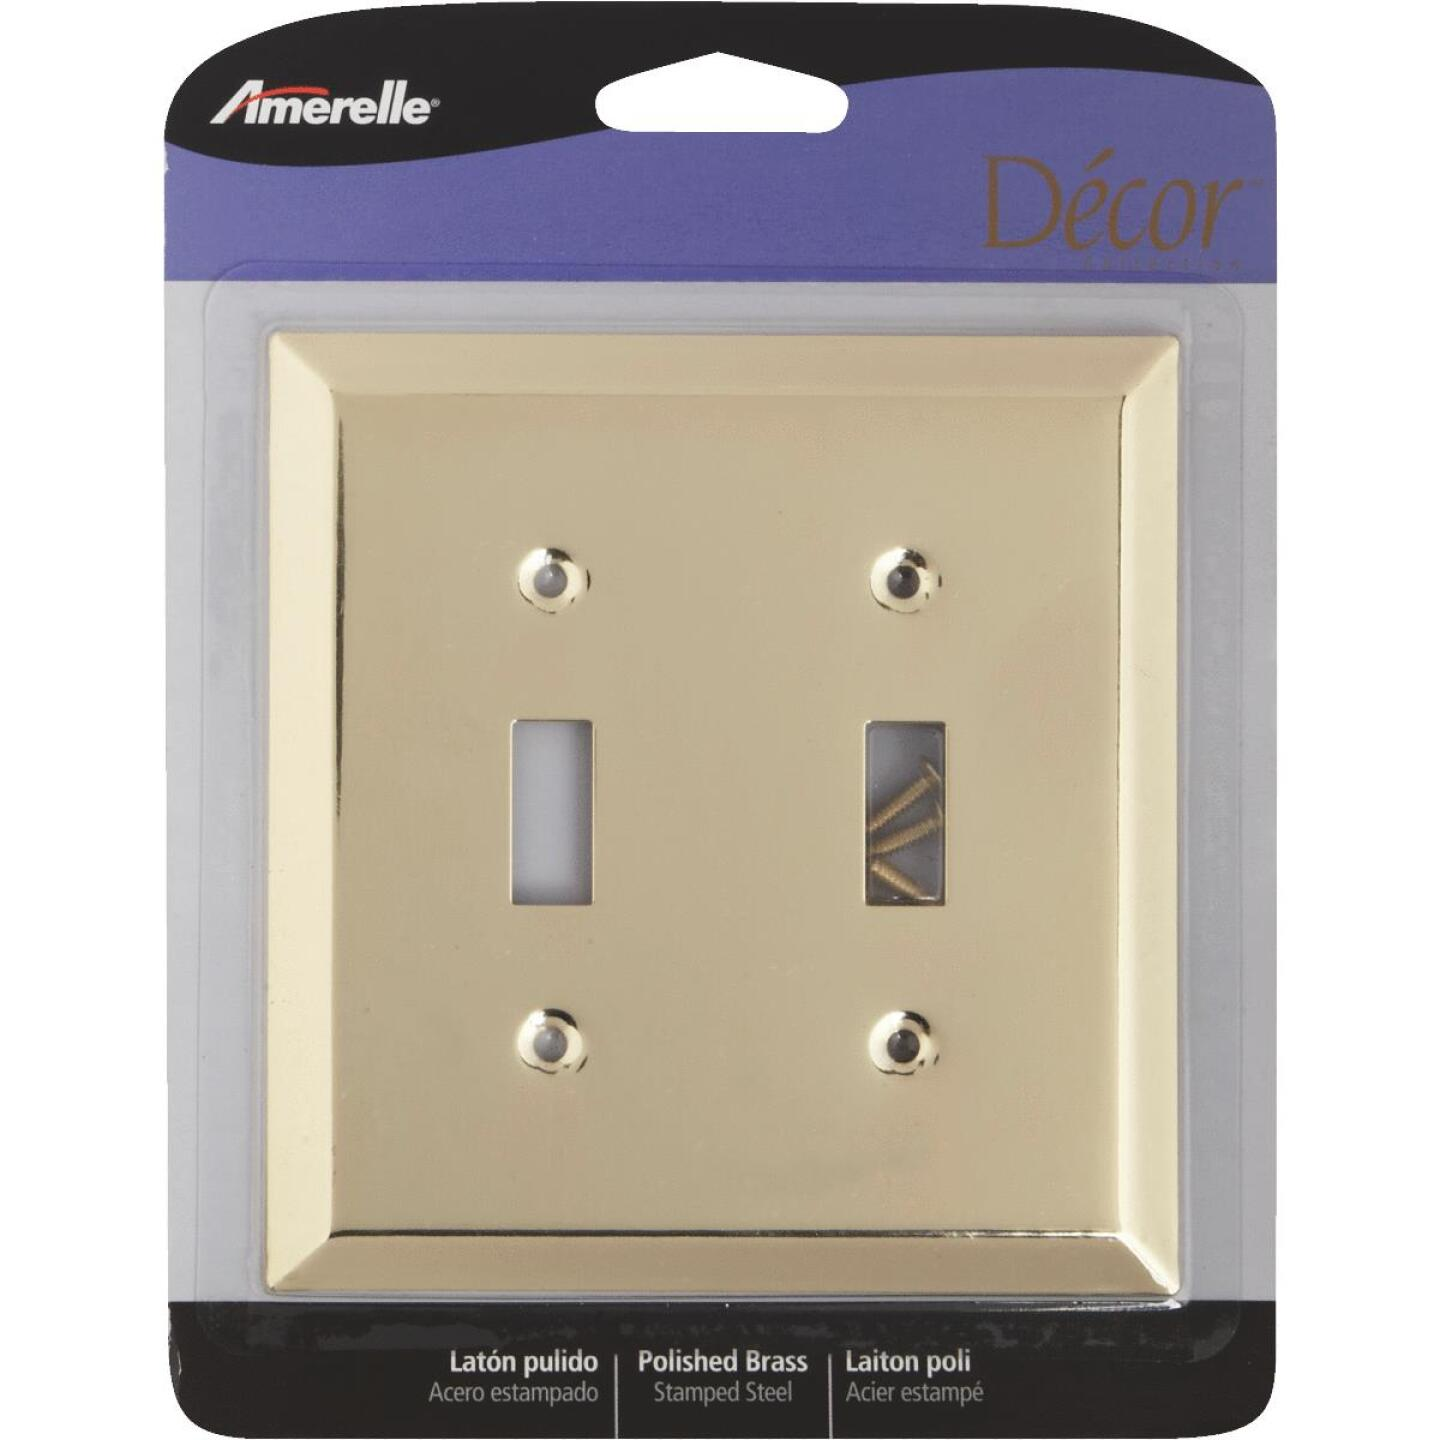 Amerelle 2-Gang Stamped Steel Toggle Switch Wall Plate, Polished Brass Image 2